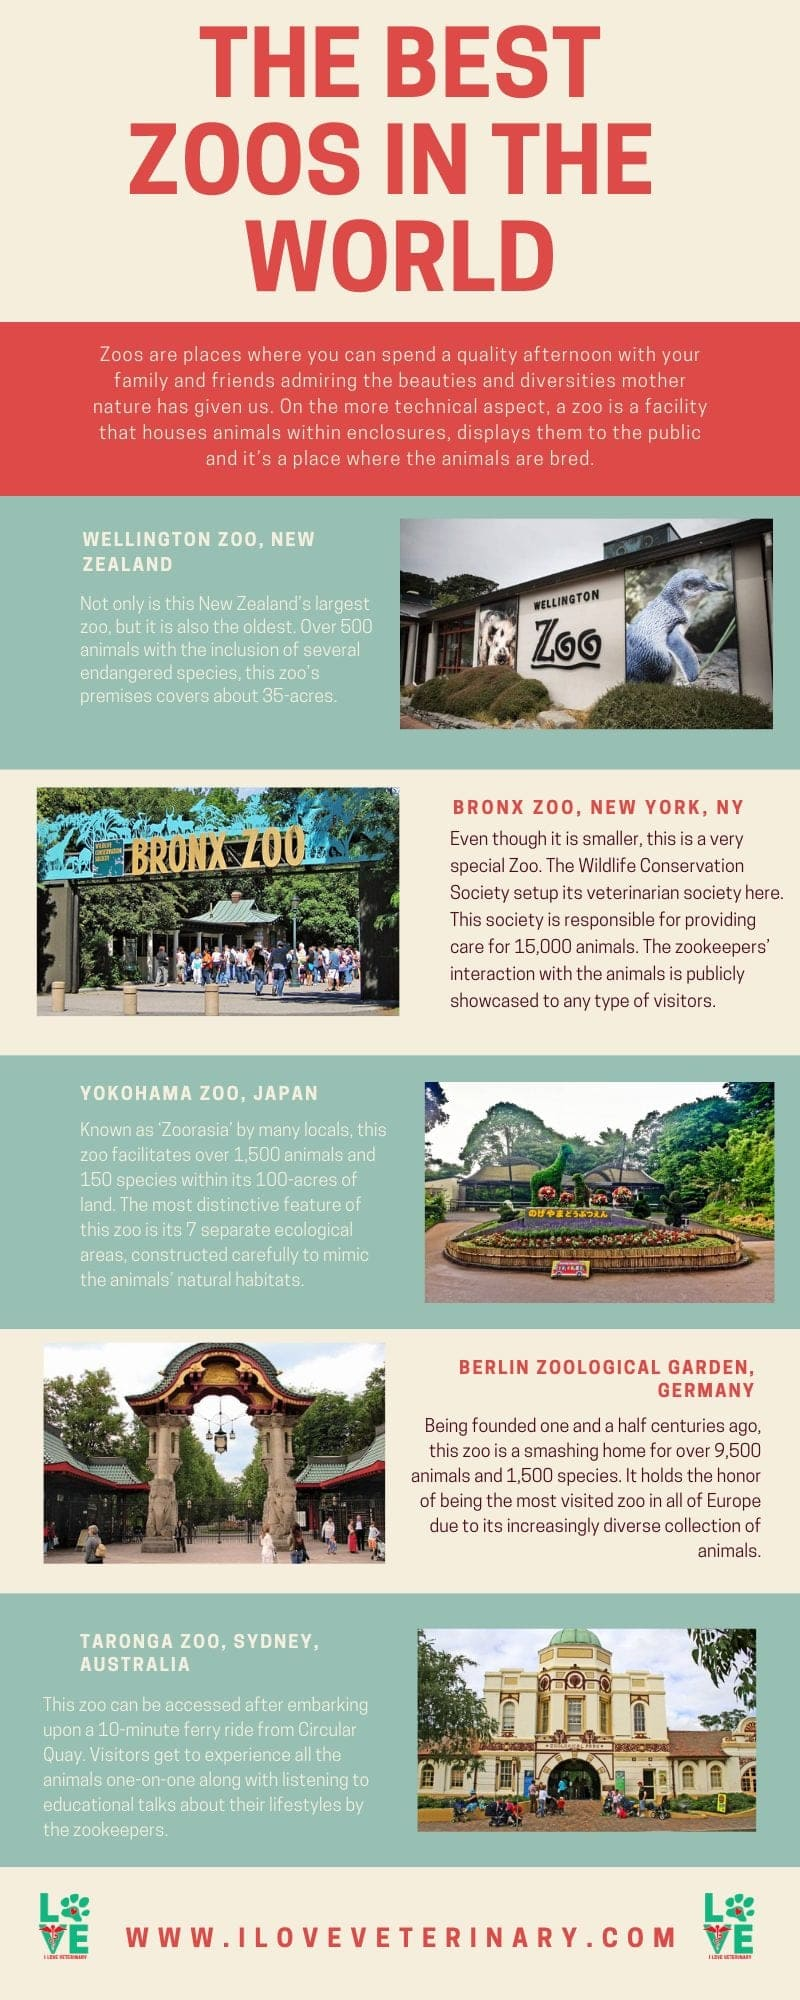 the top 5 zoos in the world I Love Veterinary - Blog for Veterinarians, Vet Techs, Students